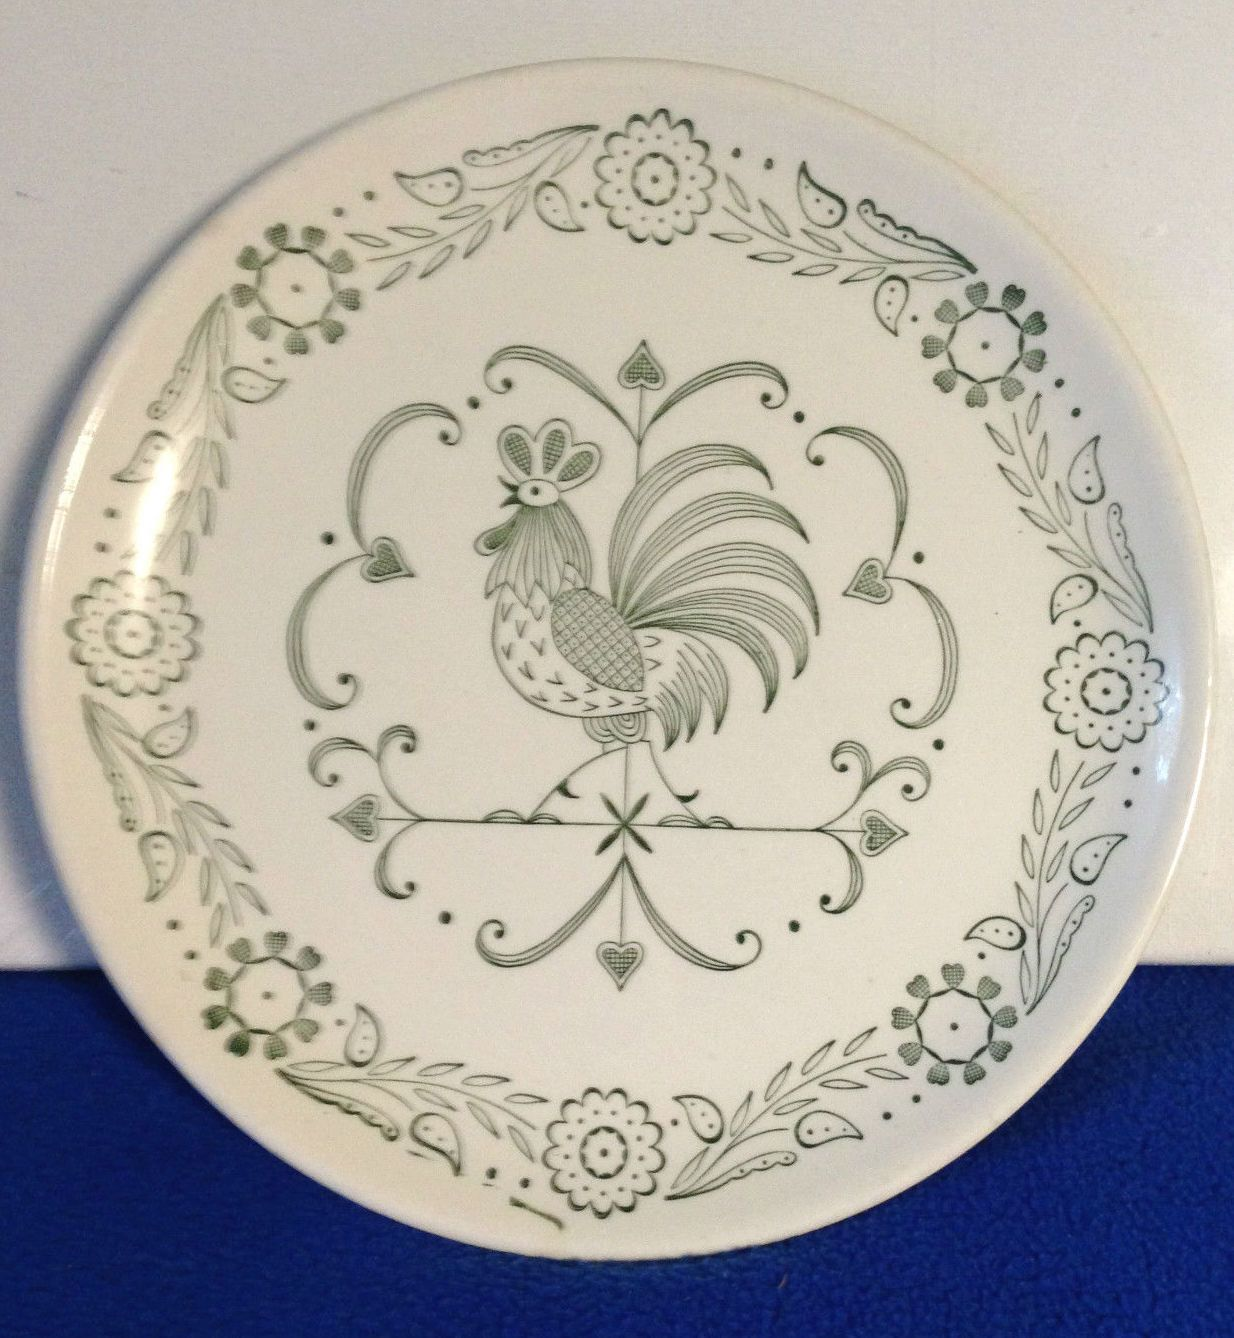 Vintage 1950s Scio Provincial Green Rooster Weathervane 9 1/4\  Dinner Plate Tableware Decorative Plate Ceramic Pottery by yourmamashouse on Etsy & Mid-Century 1950s Scio Provincial Green Rooster Weathervane 9 1/4 ...